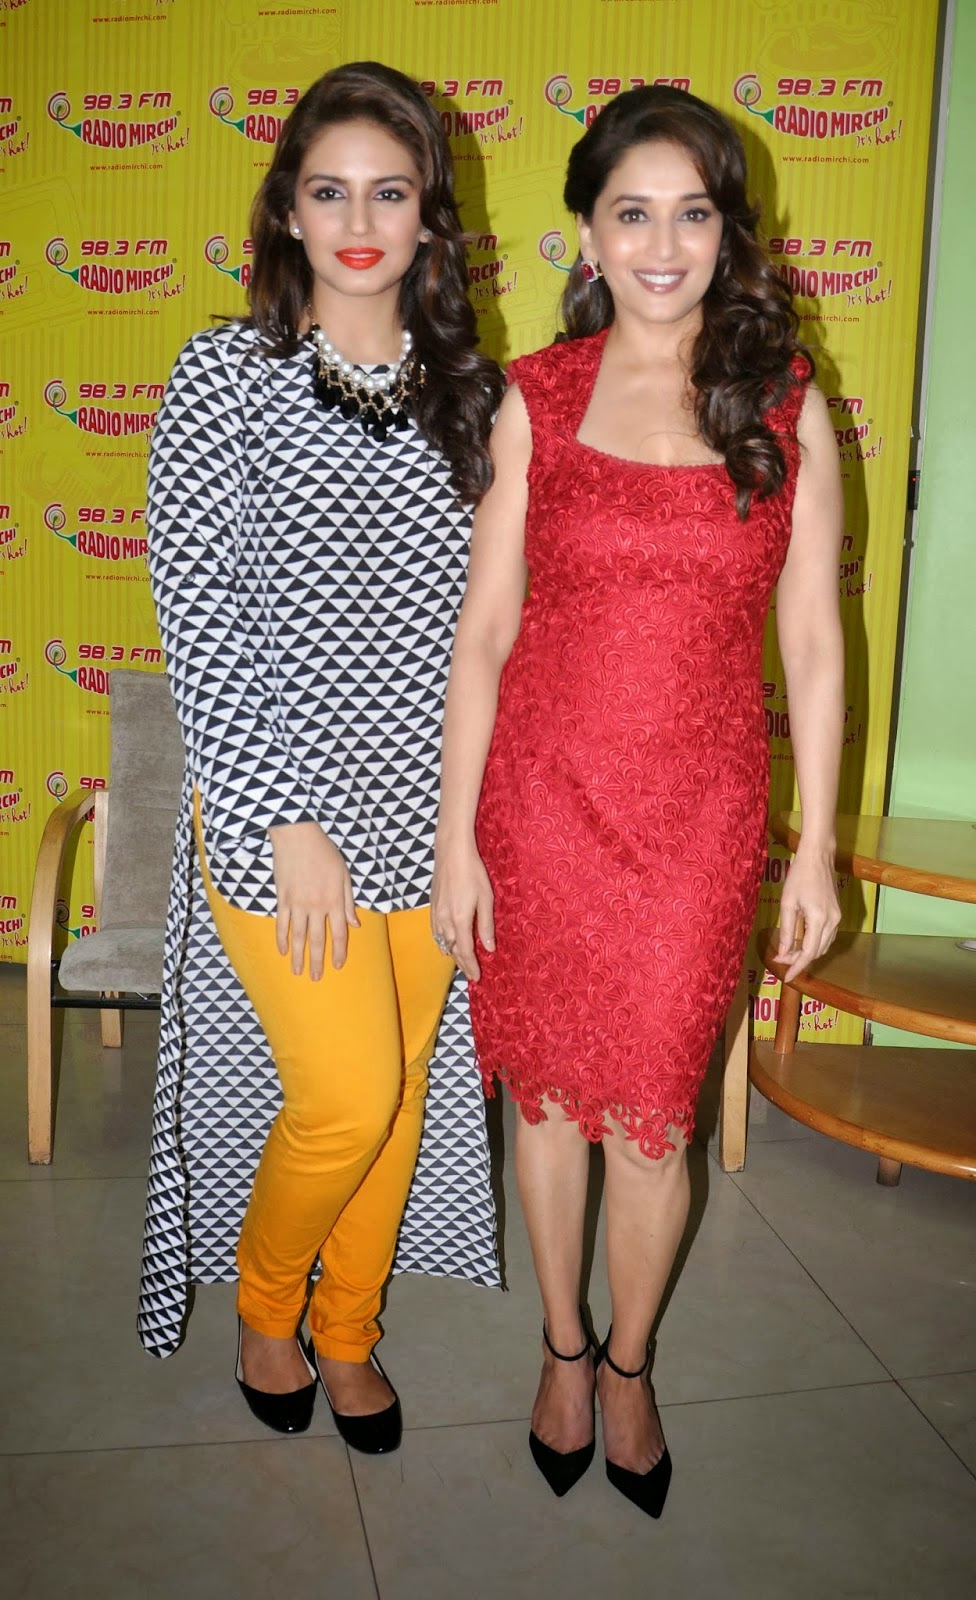 Madhuri Dixit and Huma Qureshi at Promotion Movie event